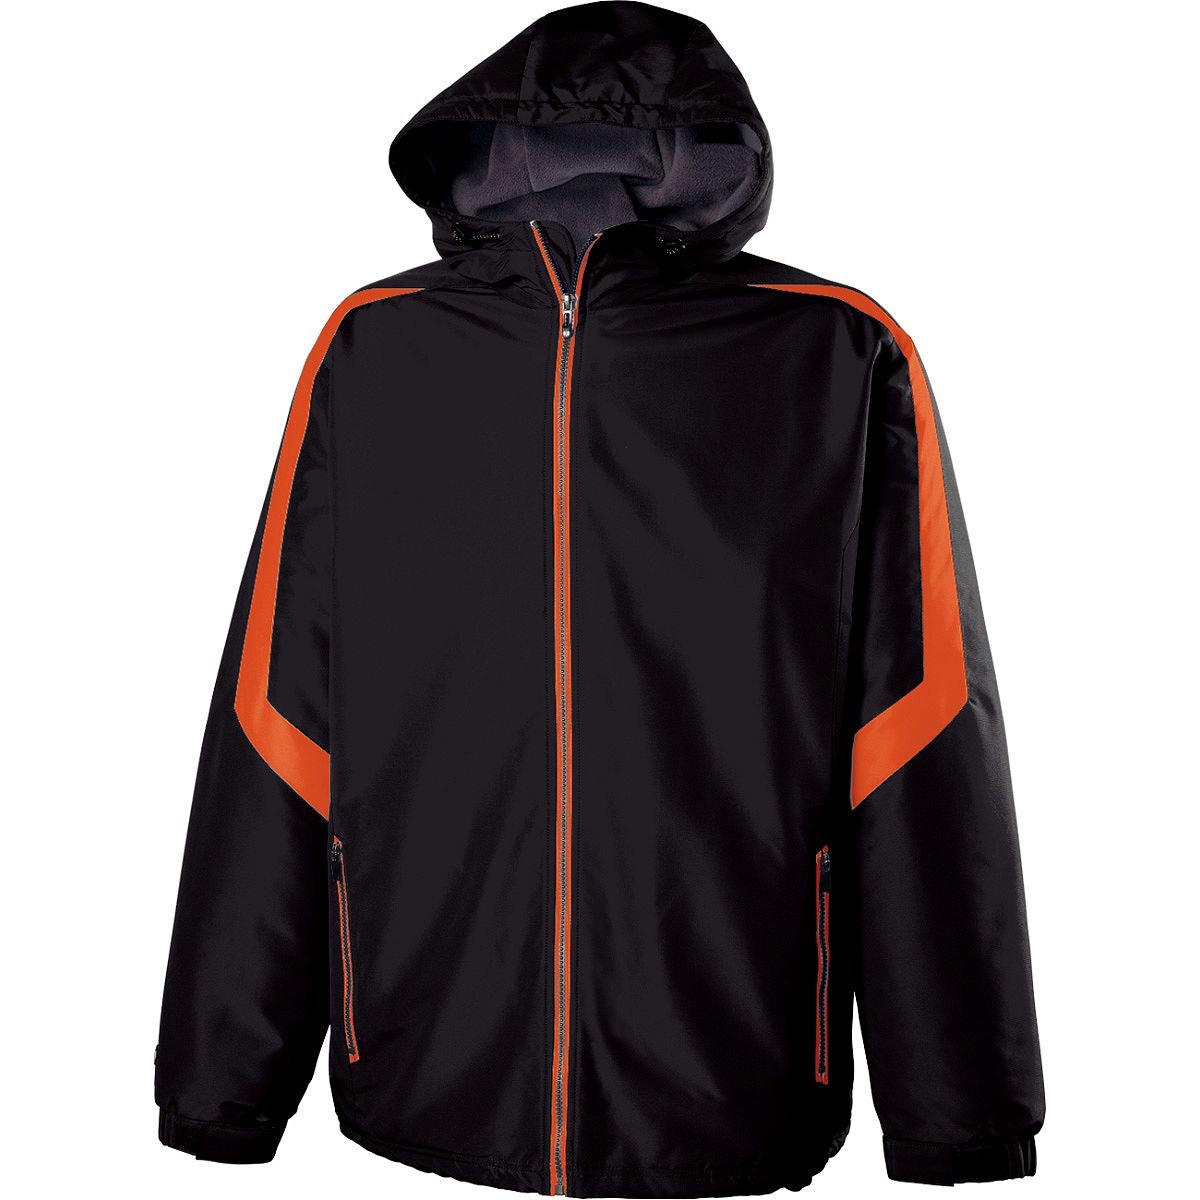 Holloway Charger Jacket Blk/Ora 2Xl - image 1 de 1